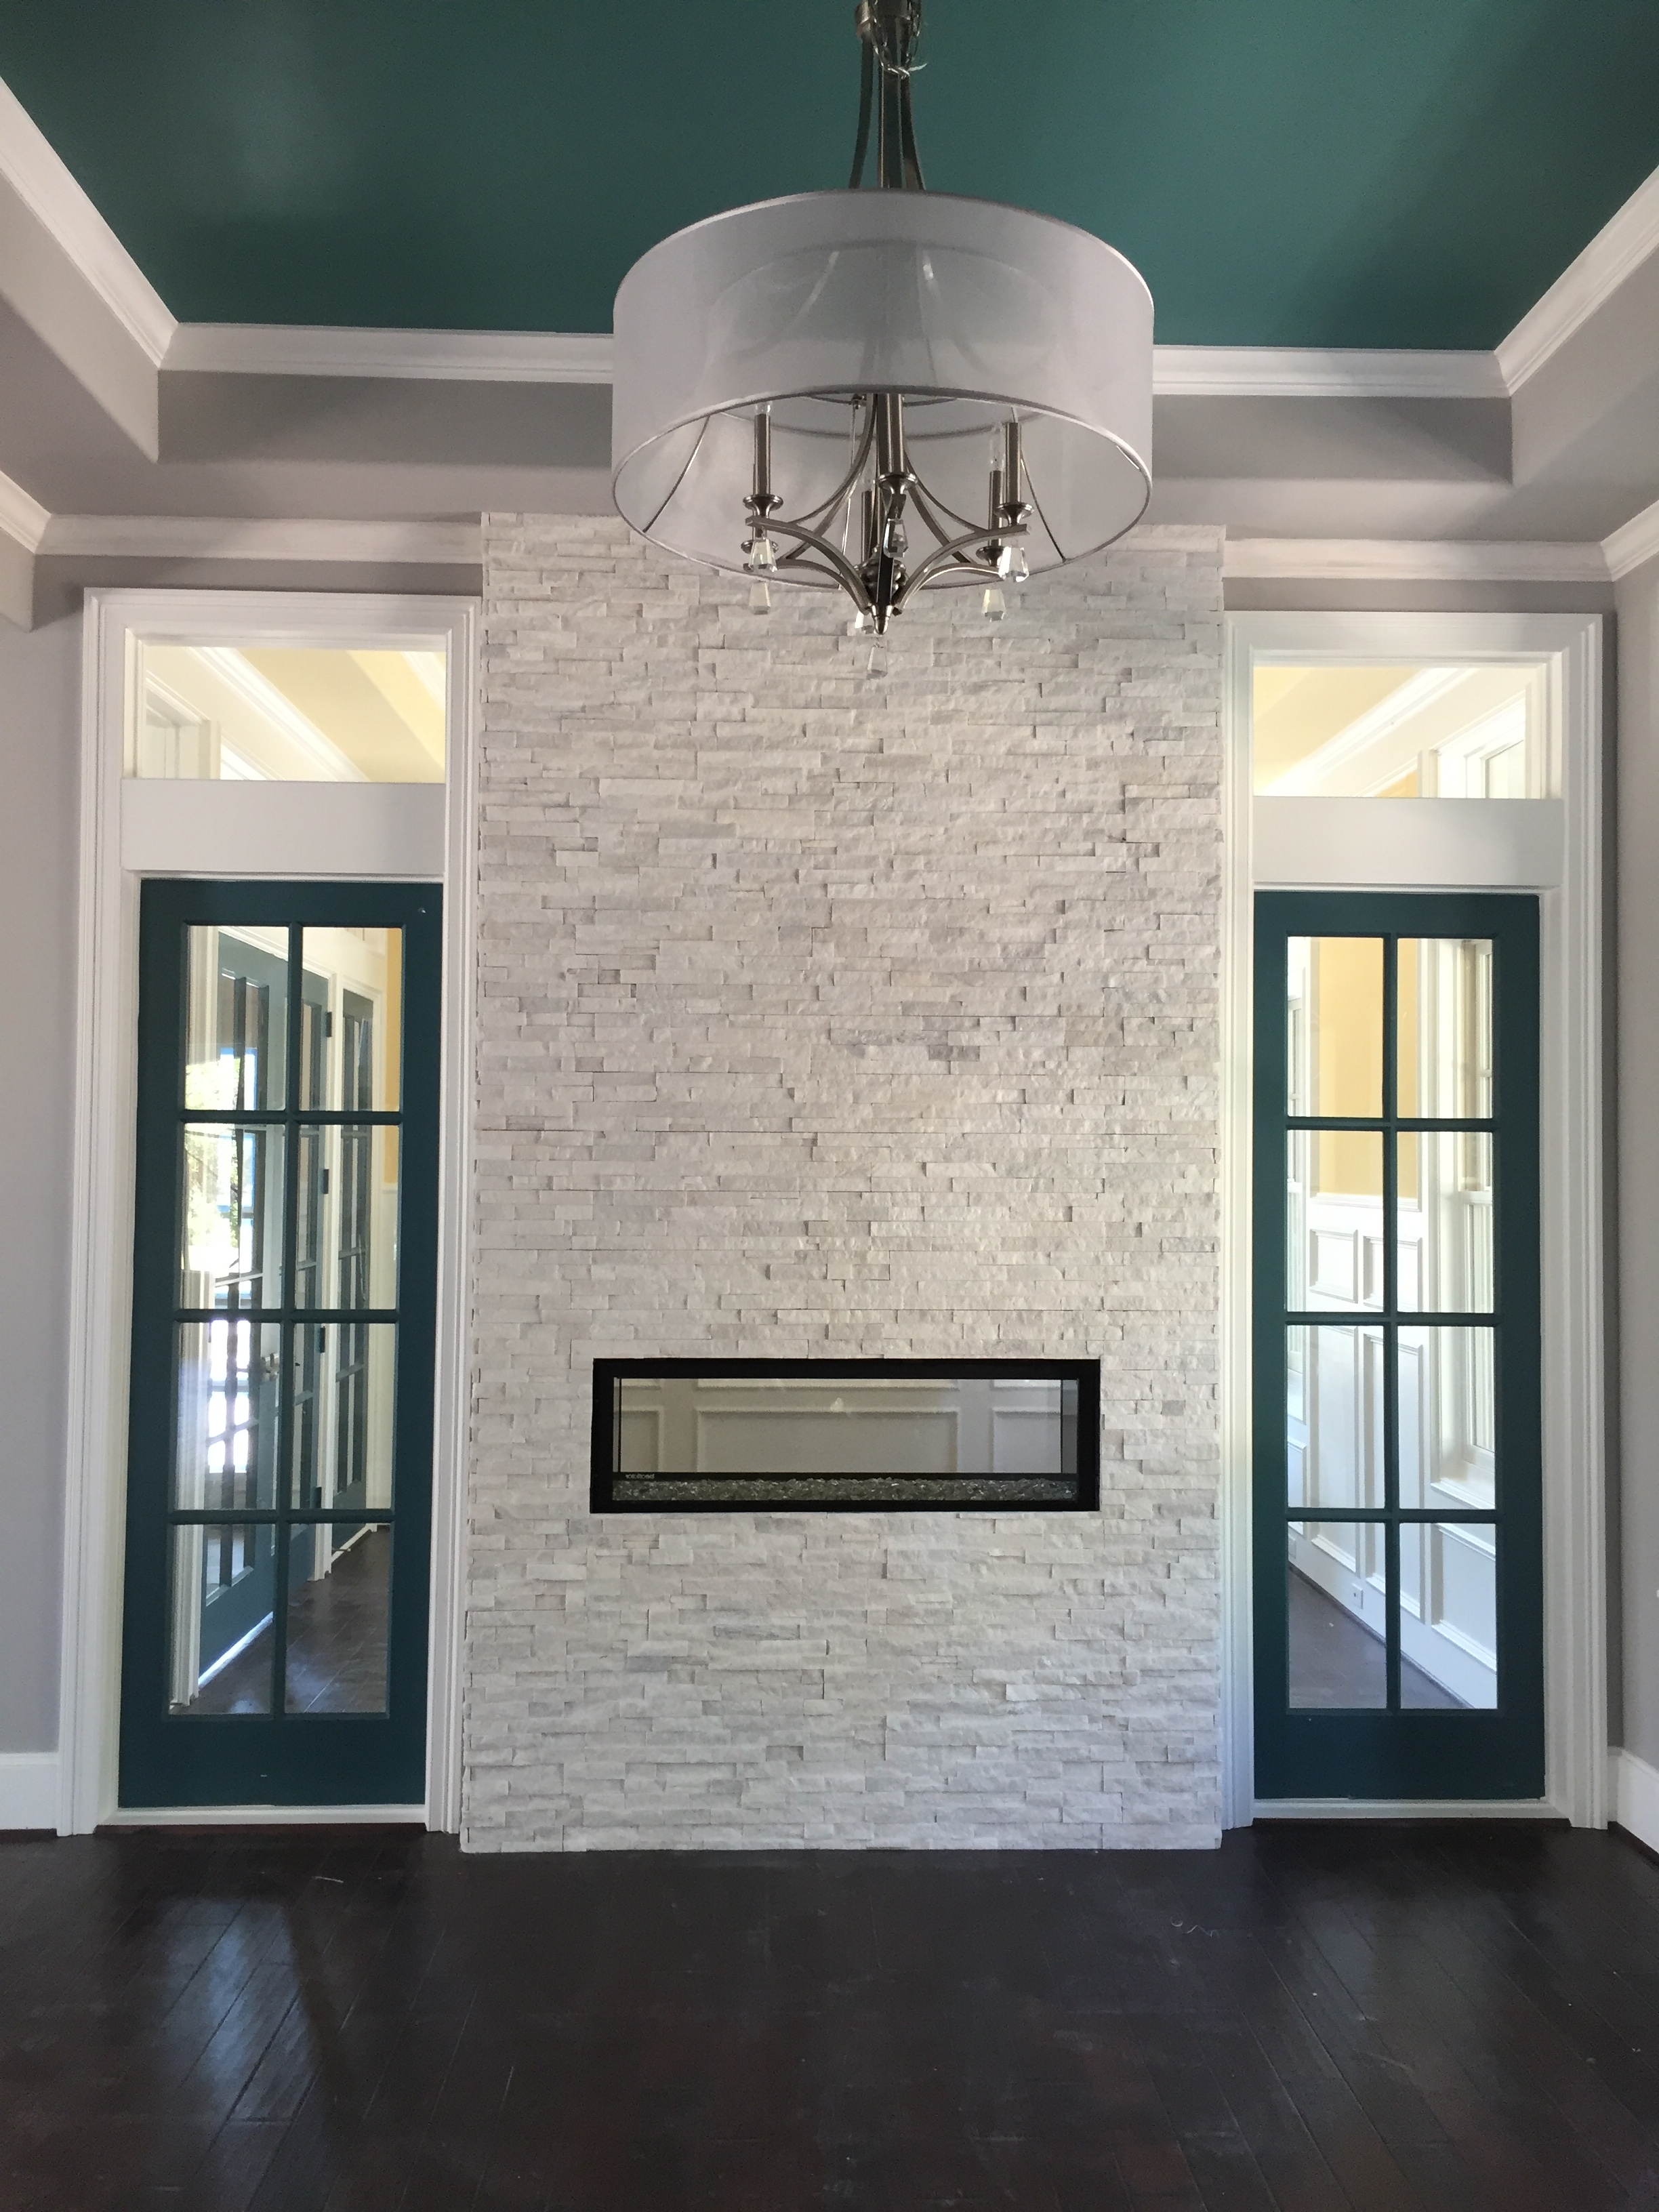 Artic White Ledgestone  Legends Stone  Natural Stone  Building Stone  Thin Veneer  Houston